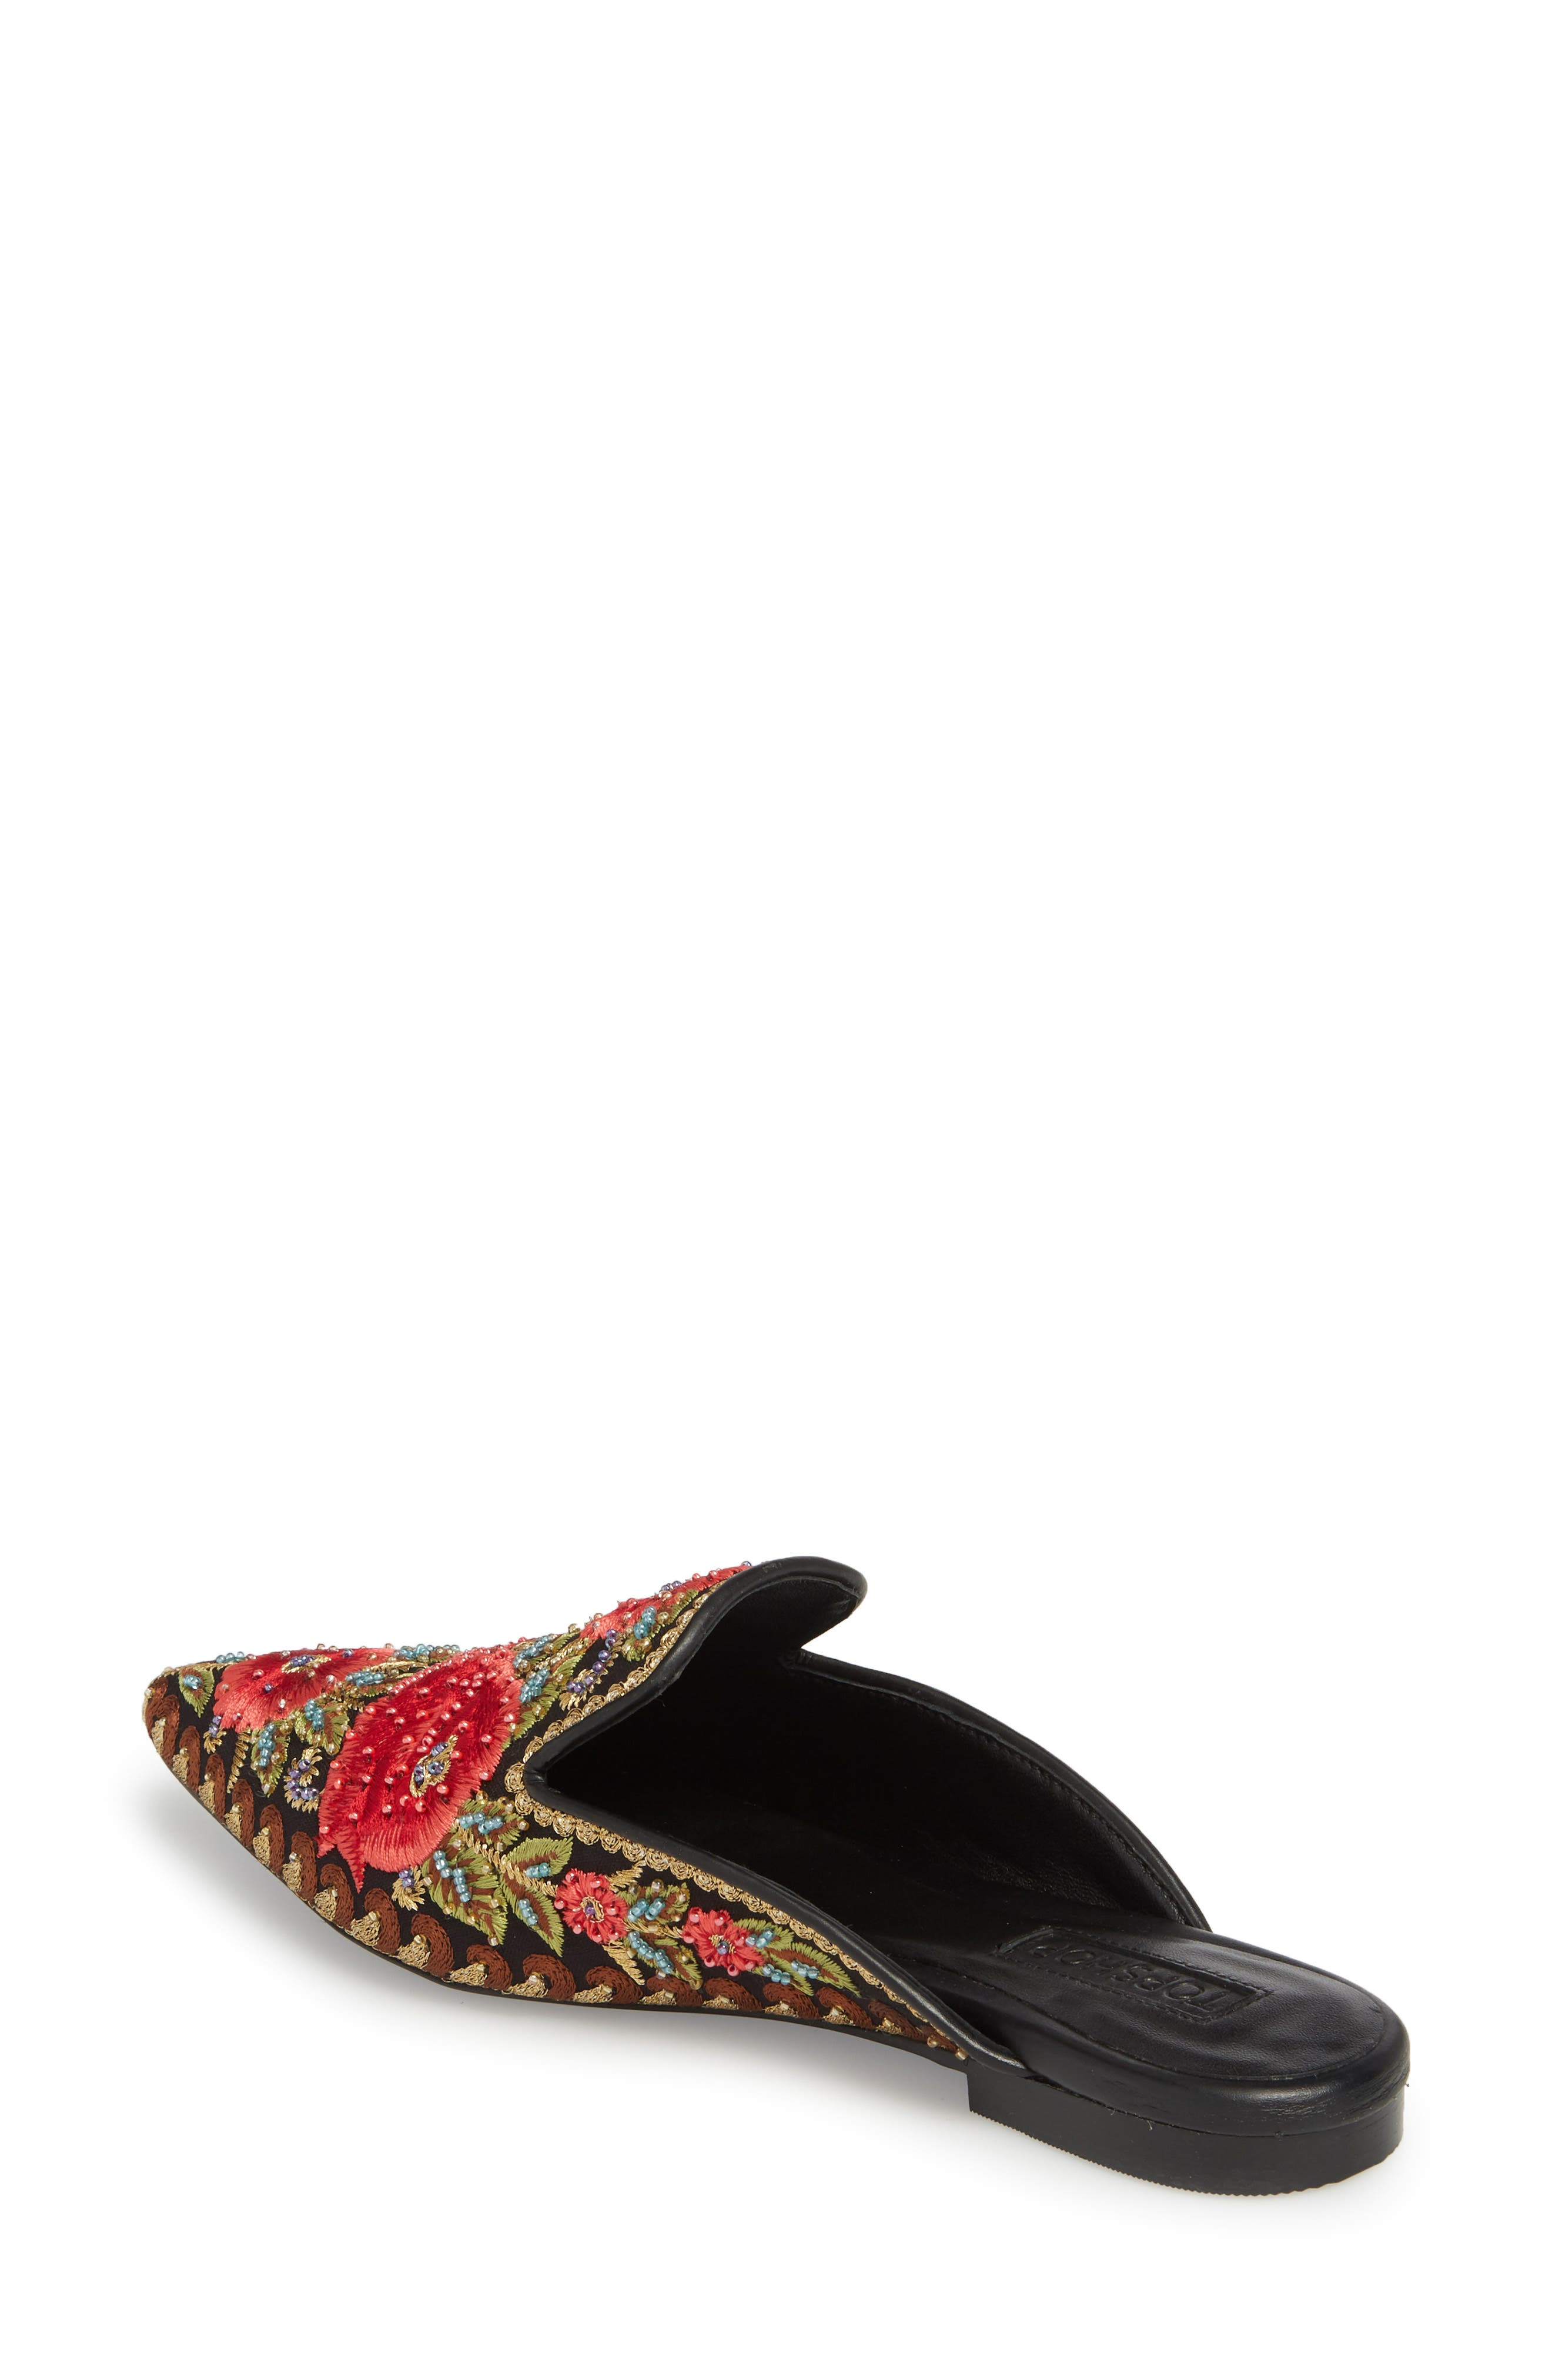 Katja Embroidered Mule,                             Alternate thumbnail 2, color,                             Black Multi